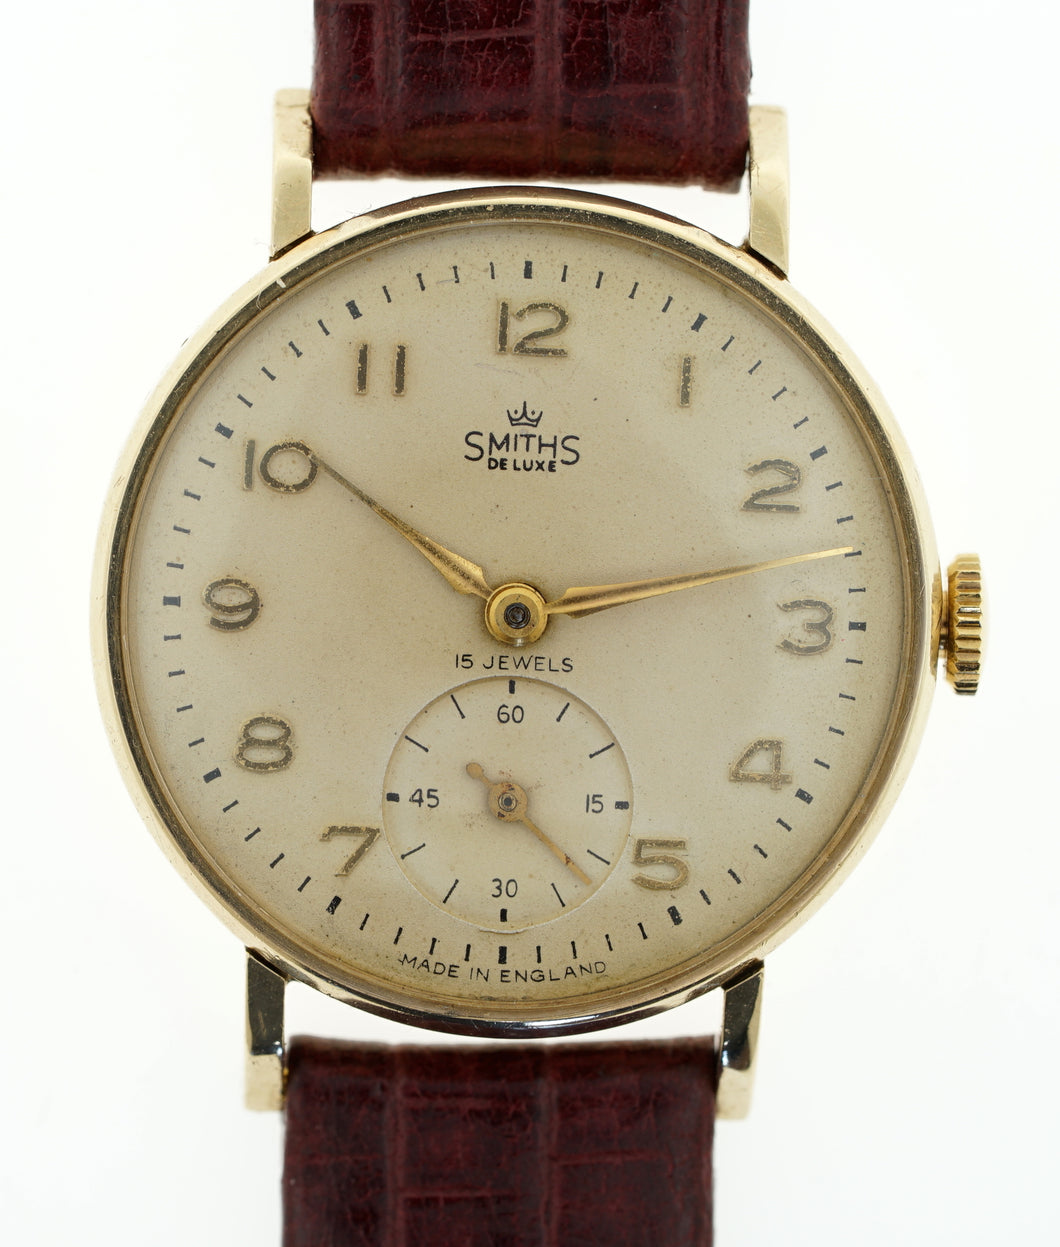 DELUXE SMITHS MODEL A 501 1955/6 9 CT GOLD ENGLISH WRISTWATCH WITH STEPPED LUGS DENNISON CASE